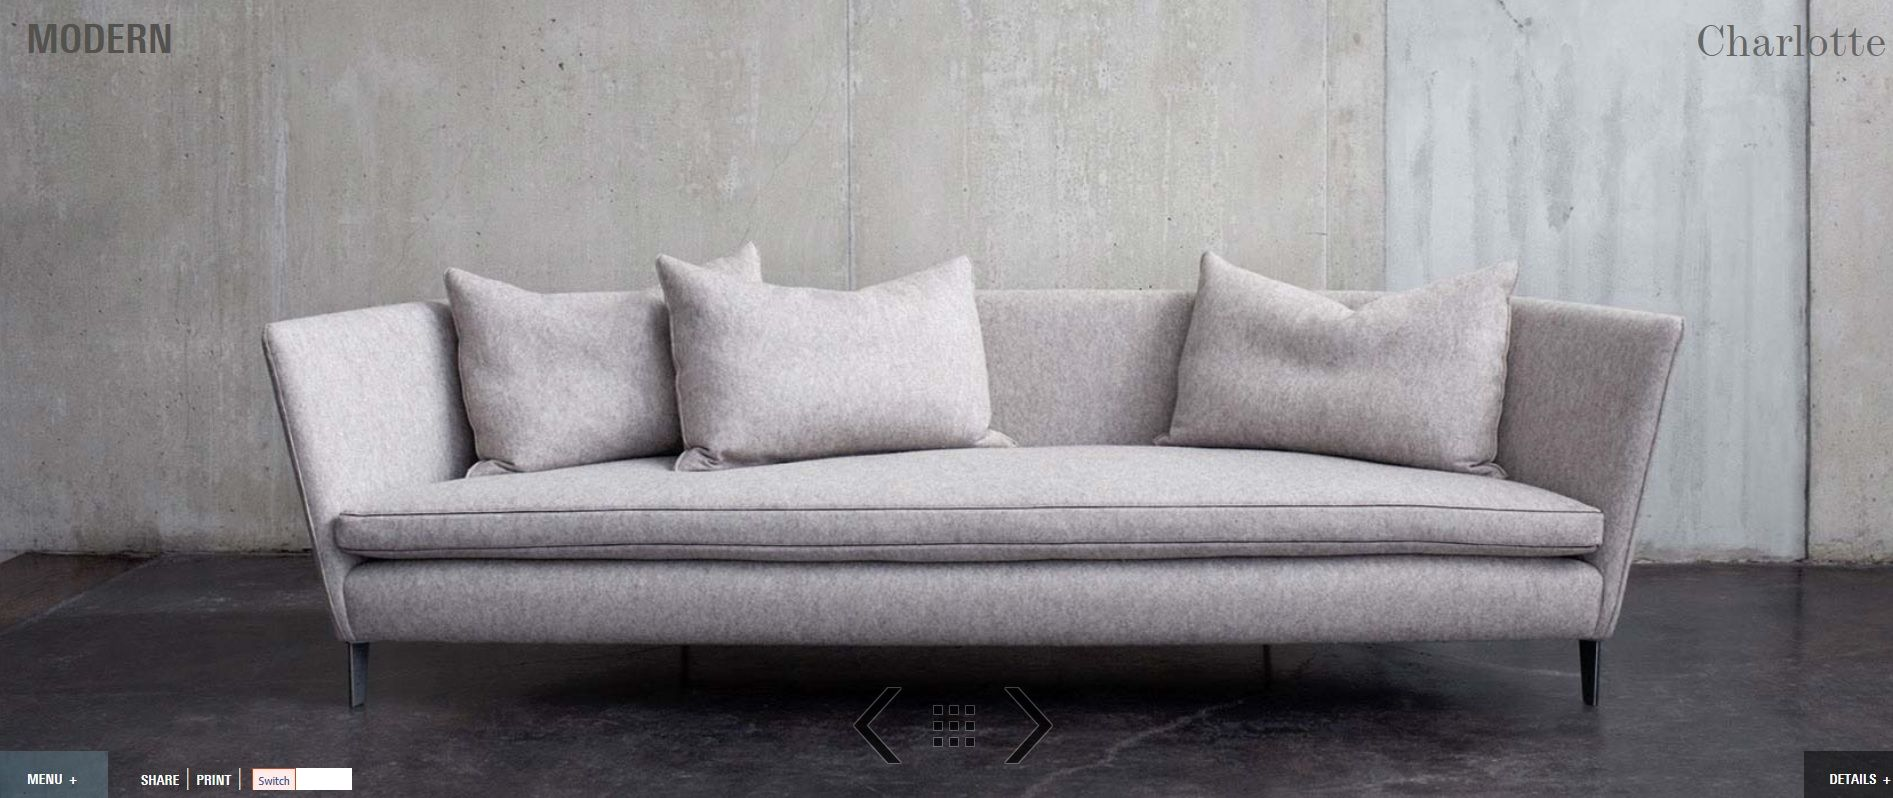 Captivating Montauk Sofa Charlotte